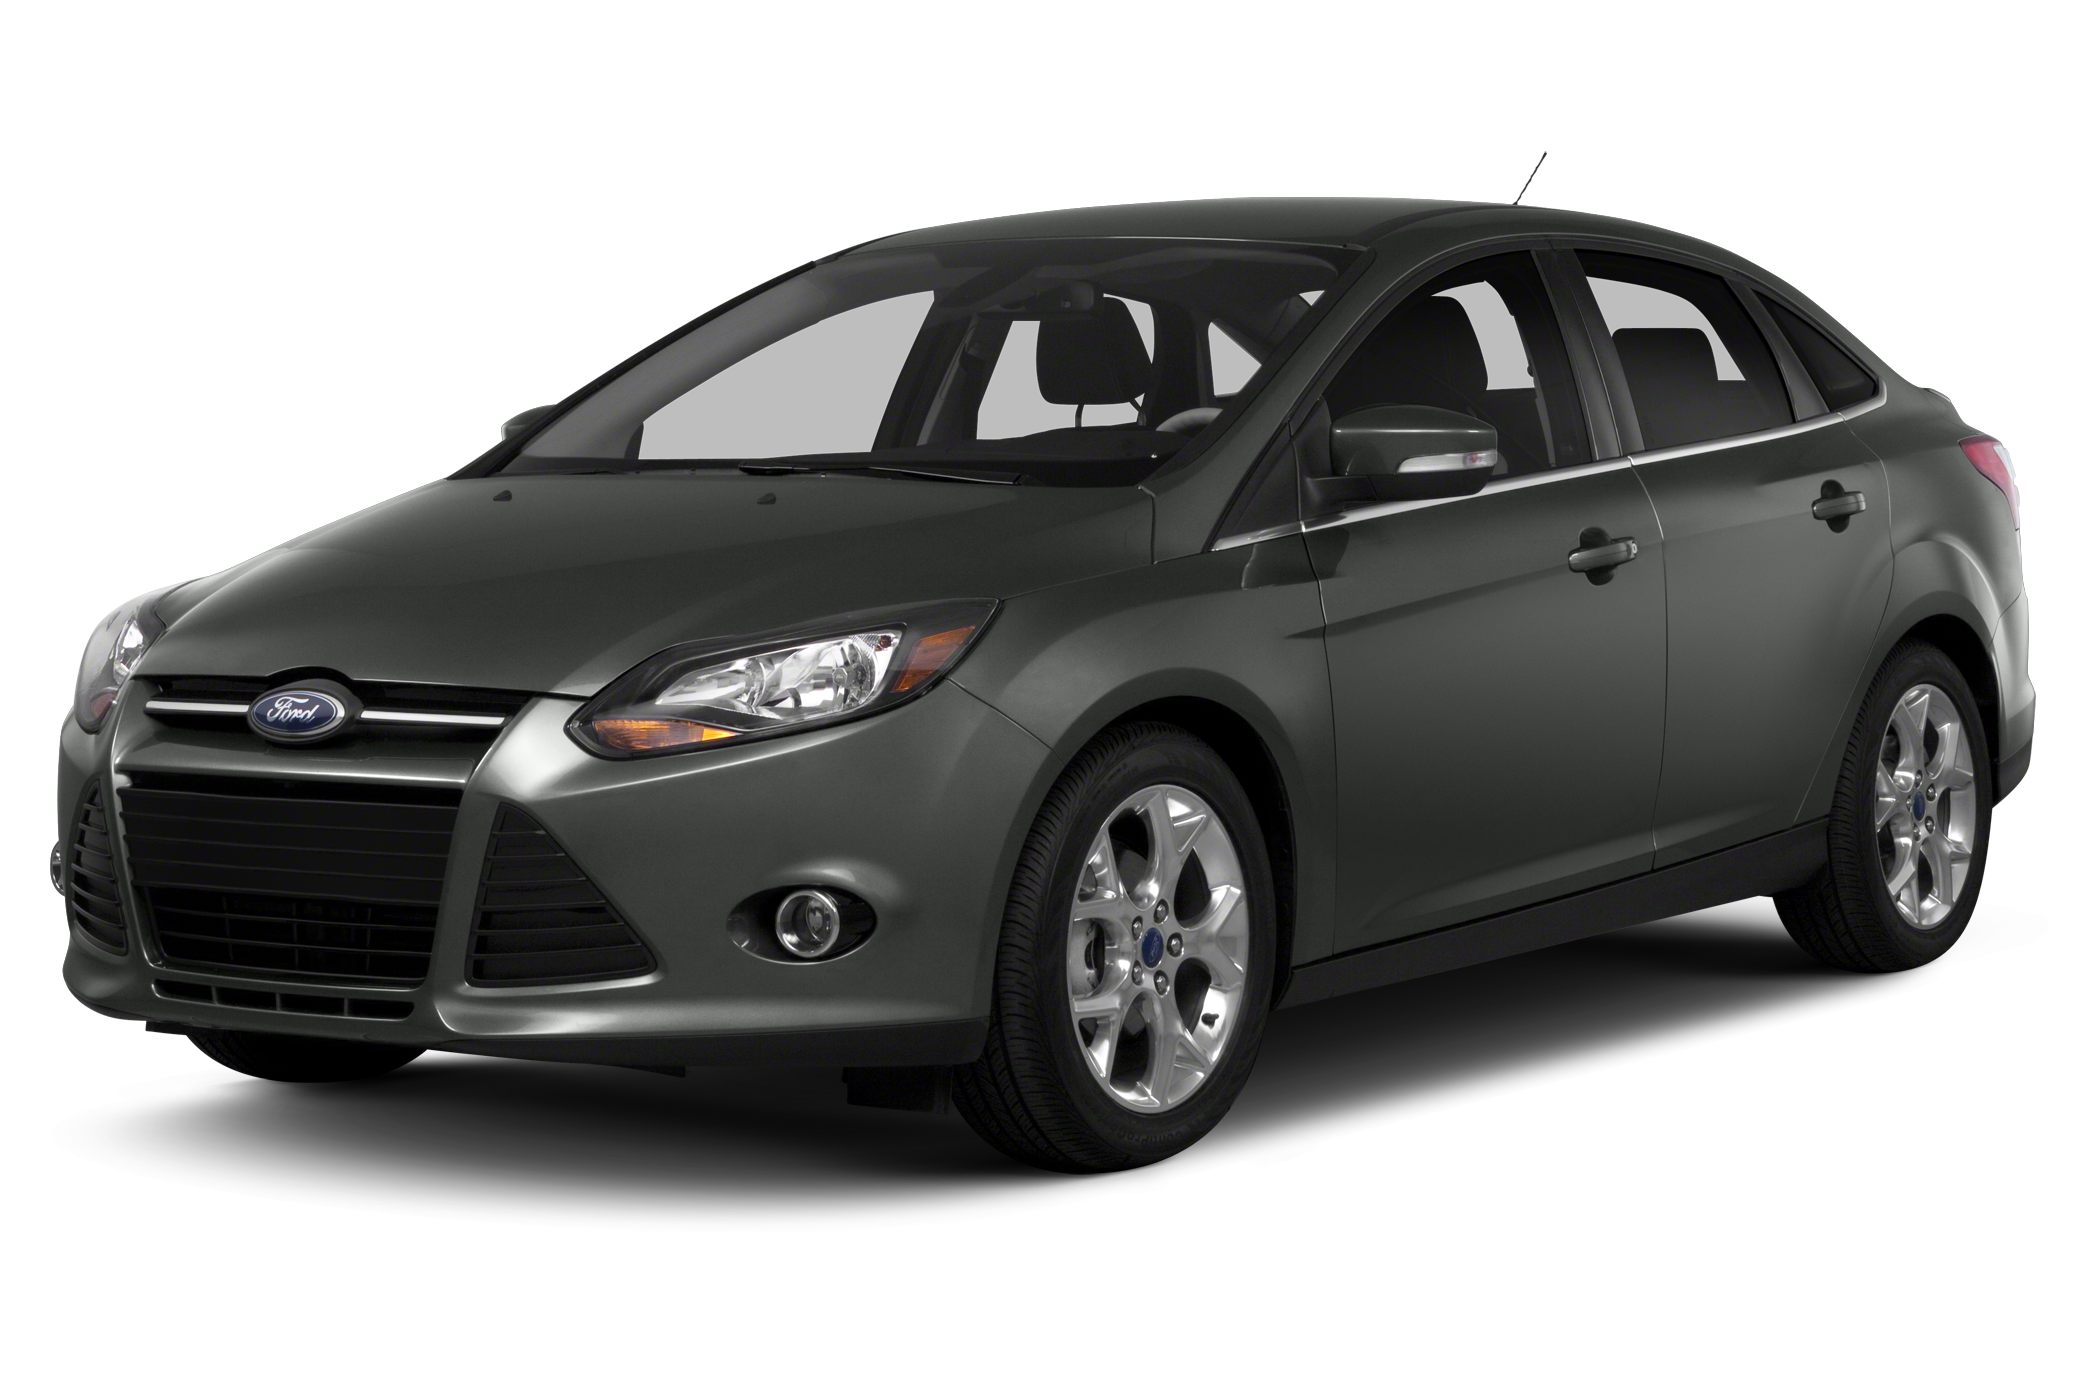 2014 Ford Focus SE Hatchback for sale in Philadelphia for $13,461 with 39,854 miles.